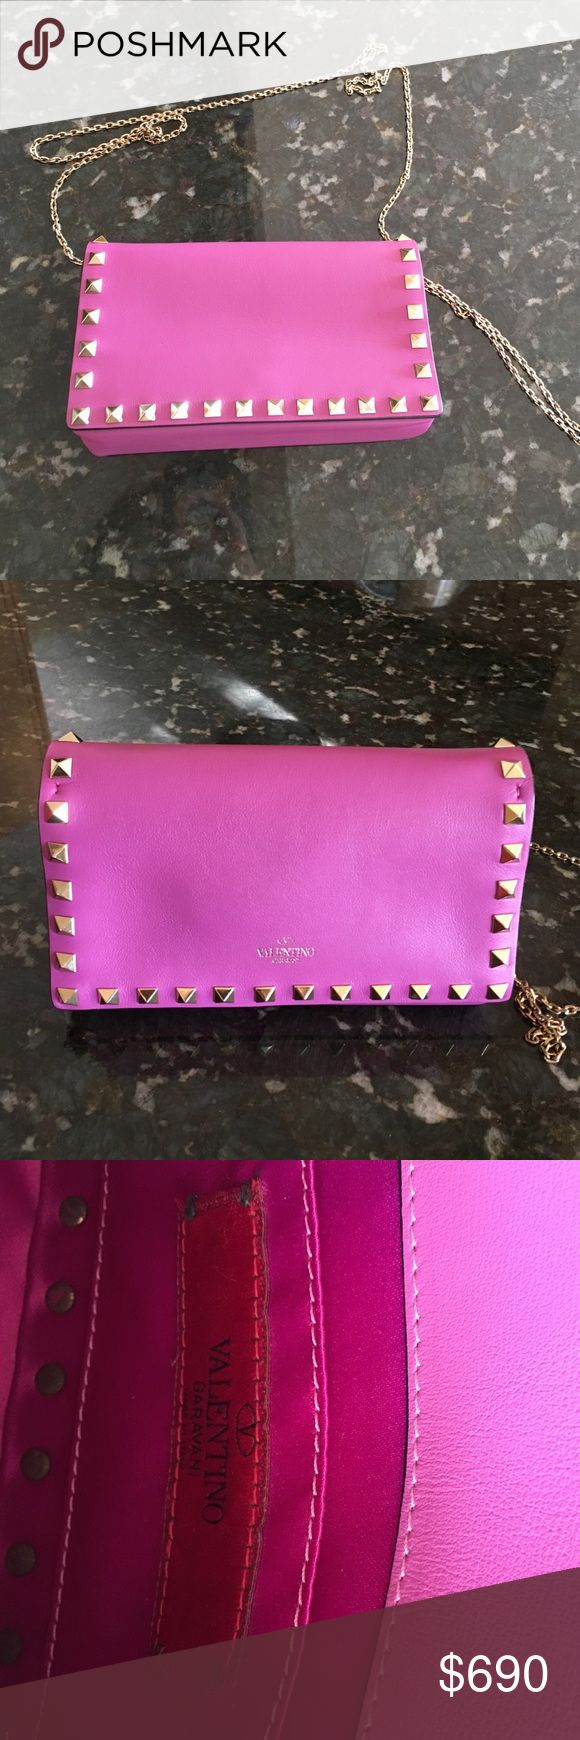 Valentino wallet on chain classic rockstud must have!99% new.                                size: height: 10 centimetres, depth: 5 centimetres, width: 18 centimetres, strap: 59 centimetres Valentino Bags Mini Bags